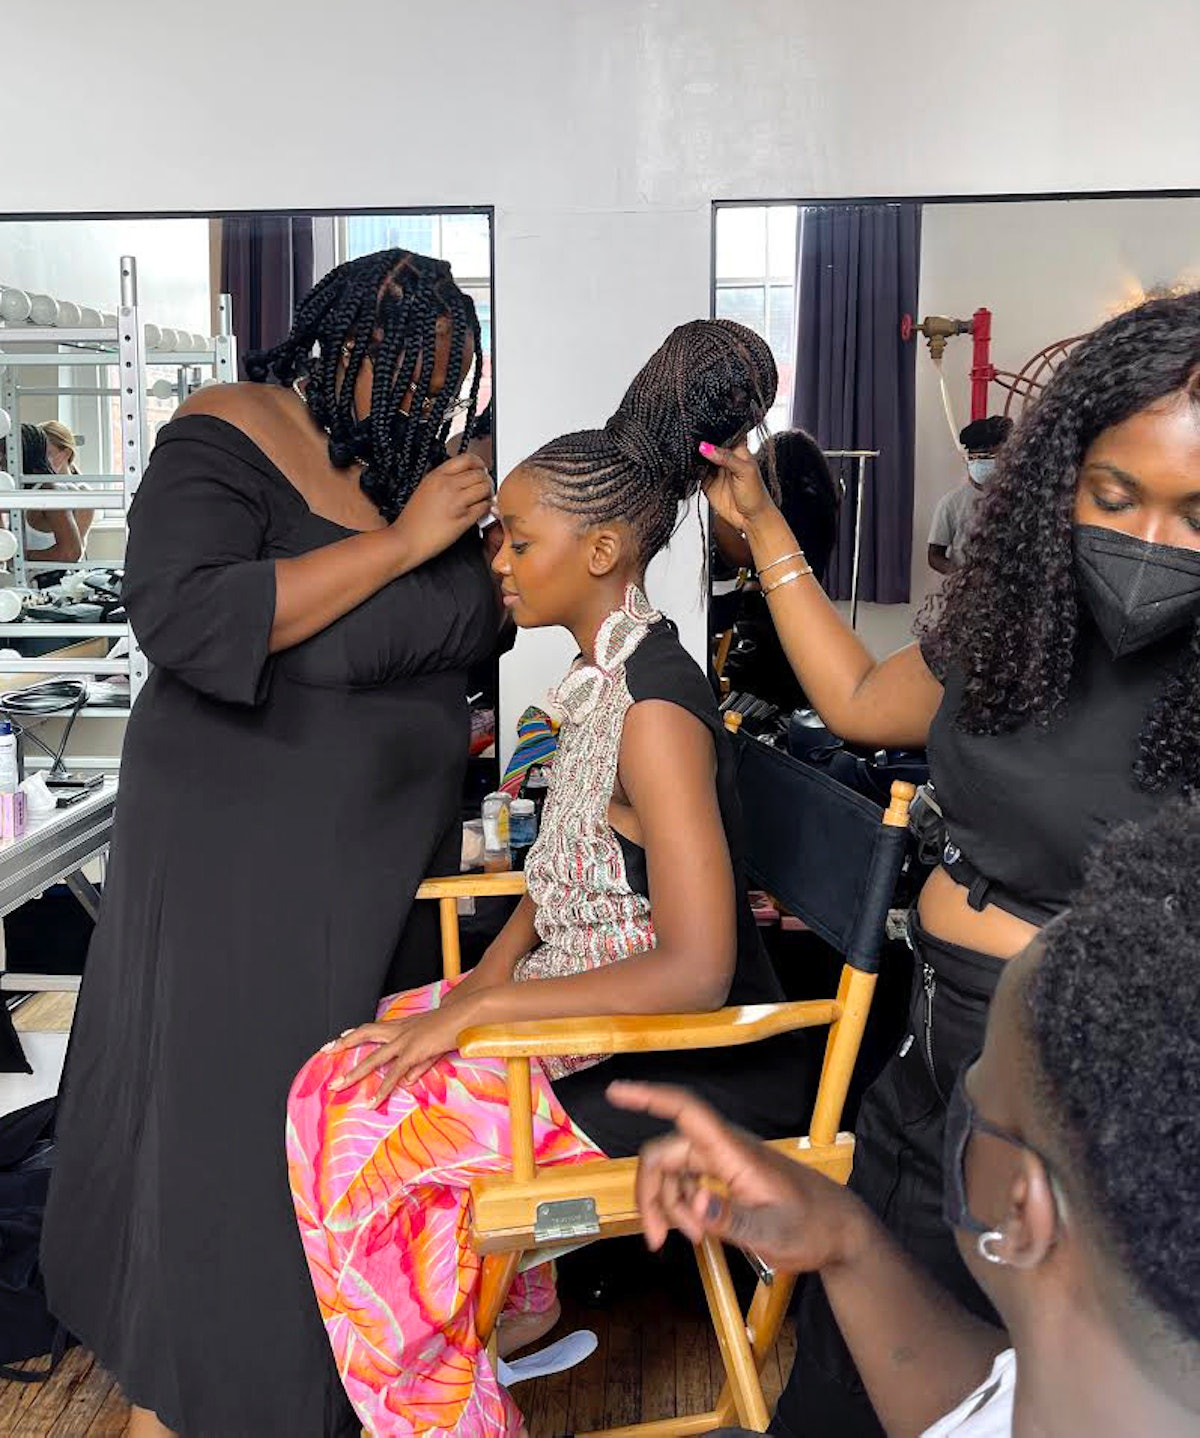 Hairstylist Lacy Redway gave Thuso Mbedu a style of braids worn by the Zulu people.